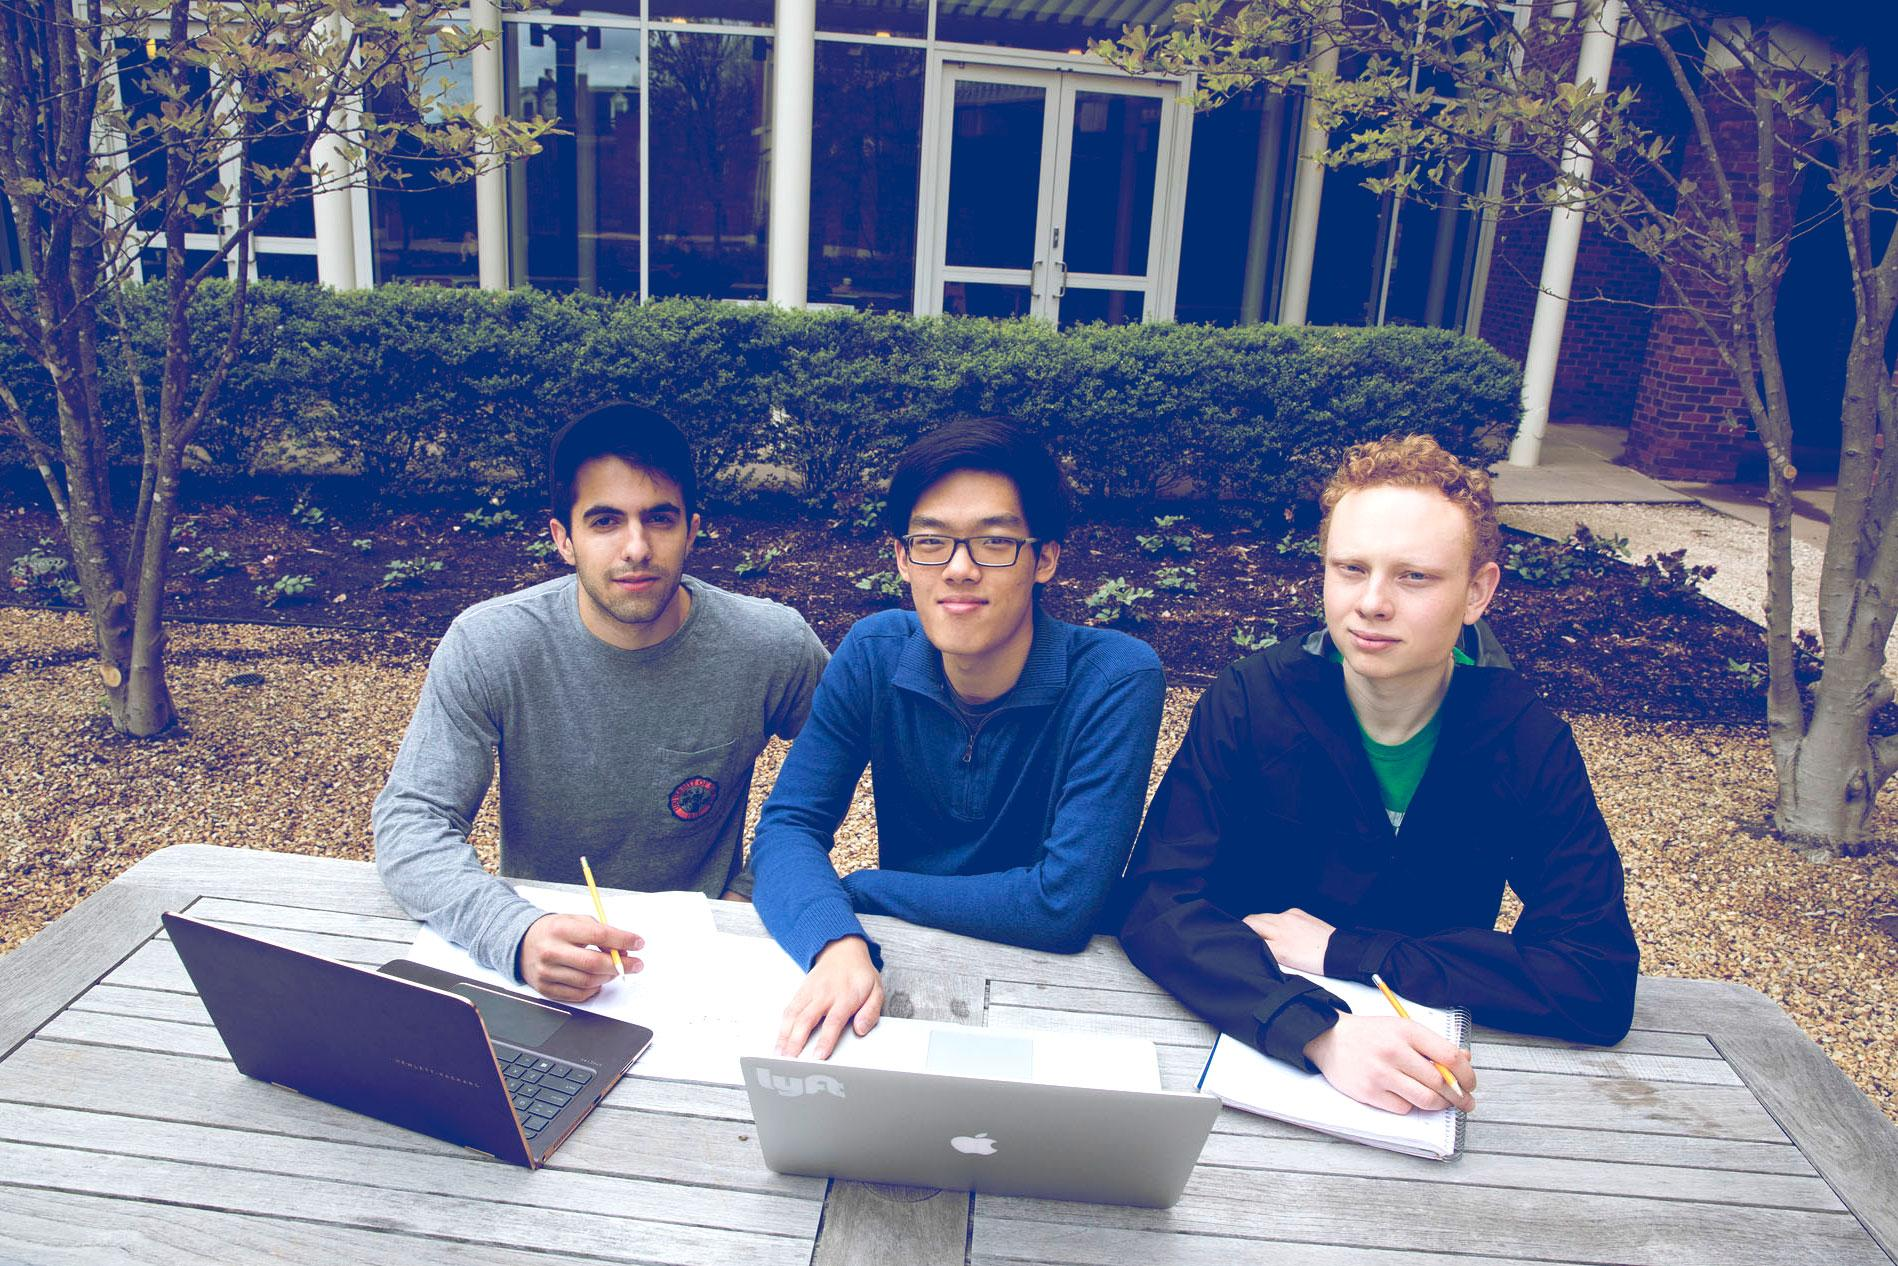 Kamran Pirasteh, left, James Wang and Ripley Carroll hope their startup, Tandem Medical, can dramatically change how doctors, nurses and technicians communicate.